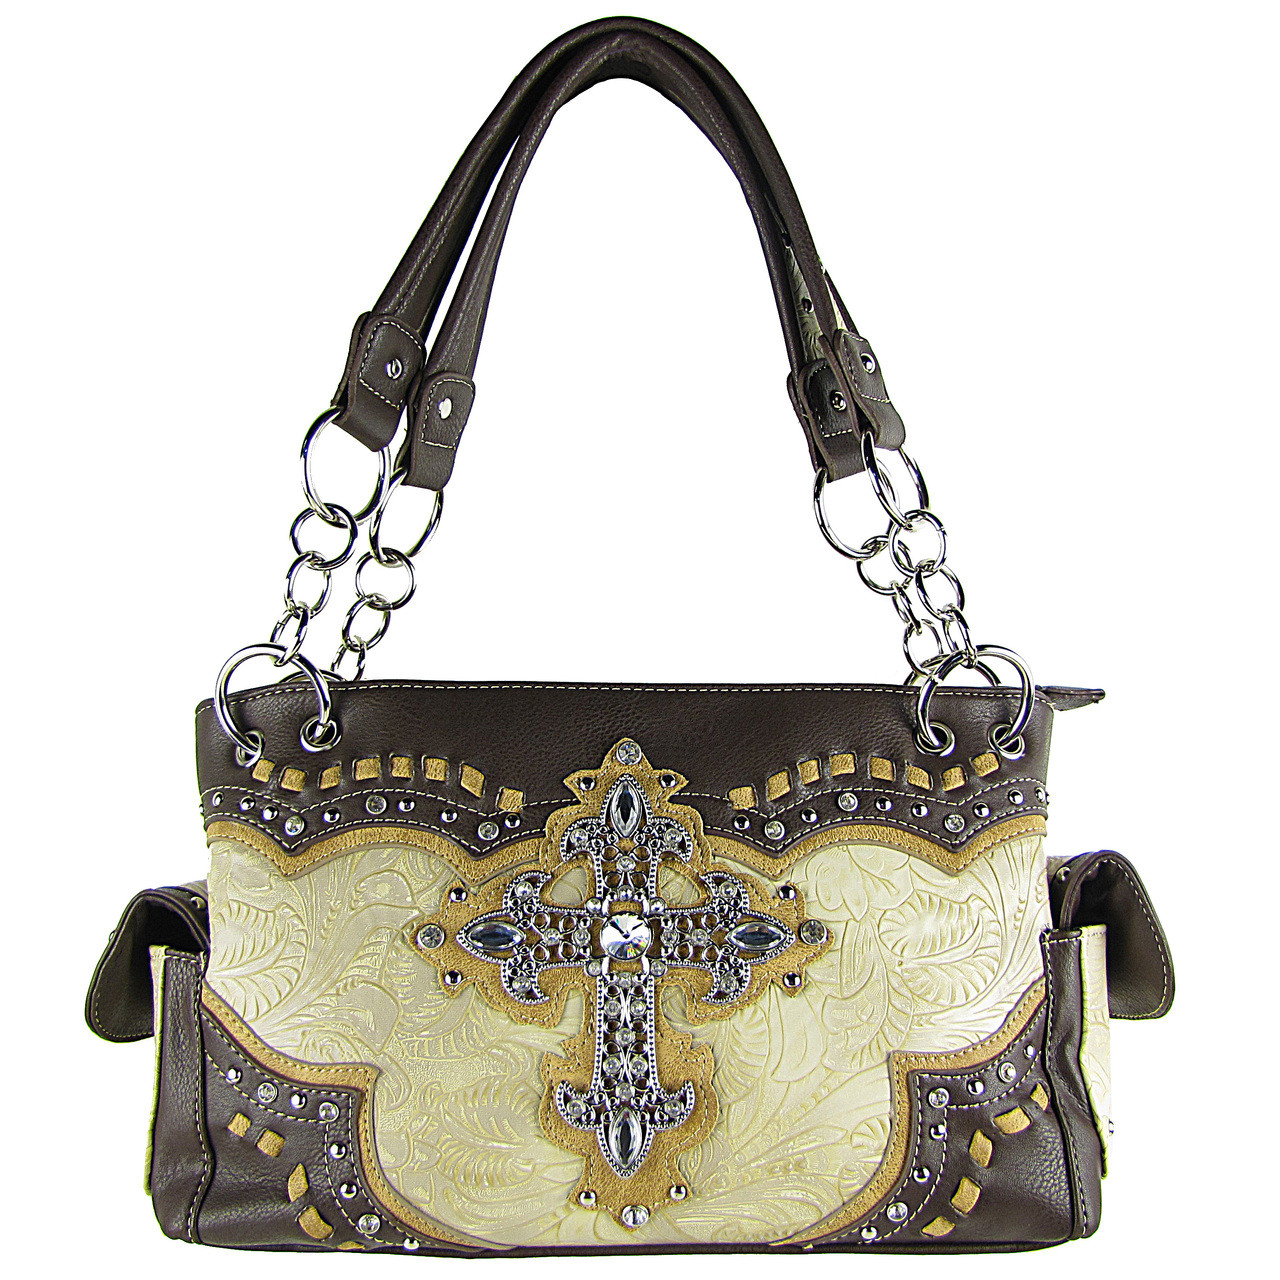 BEIGE WESTERN RHINESTONE CROSS LOOK SHOULDER HANDBAG HB1-34LCRBEI